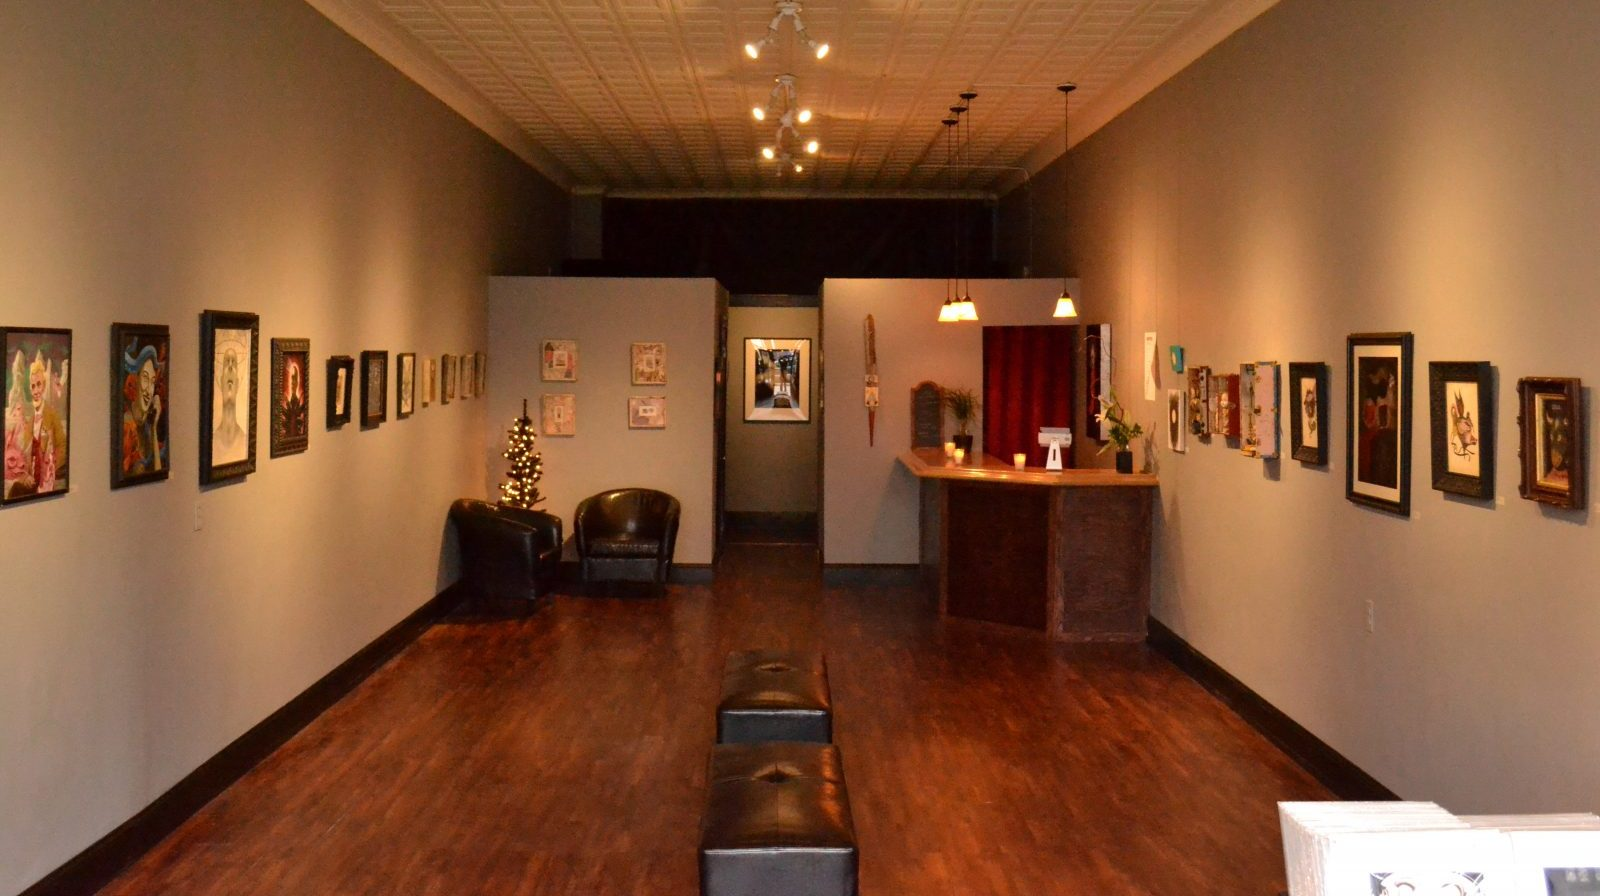 Craig and Maria Pabico LaRotonda's Revolution Gallery features pop surrealist art from around the country.